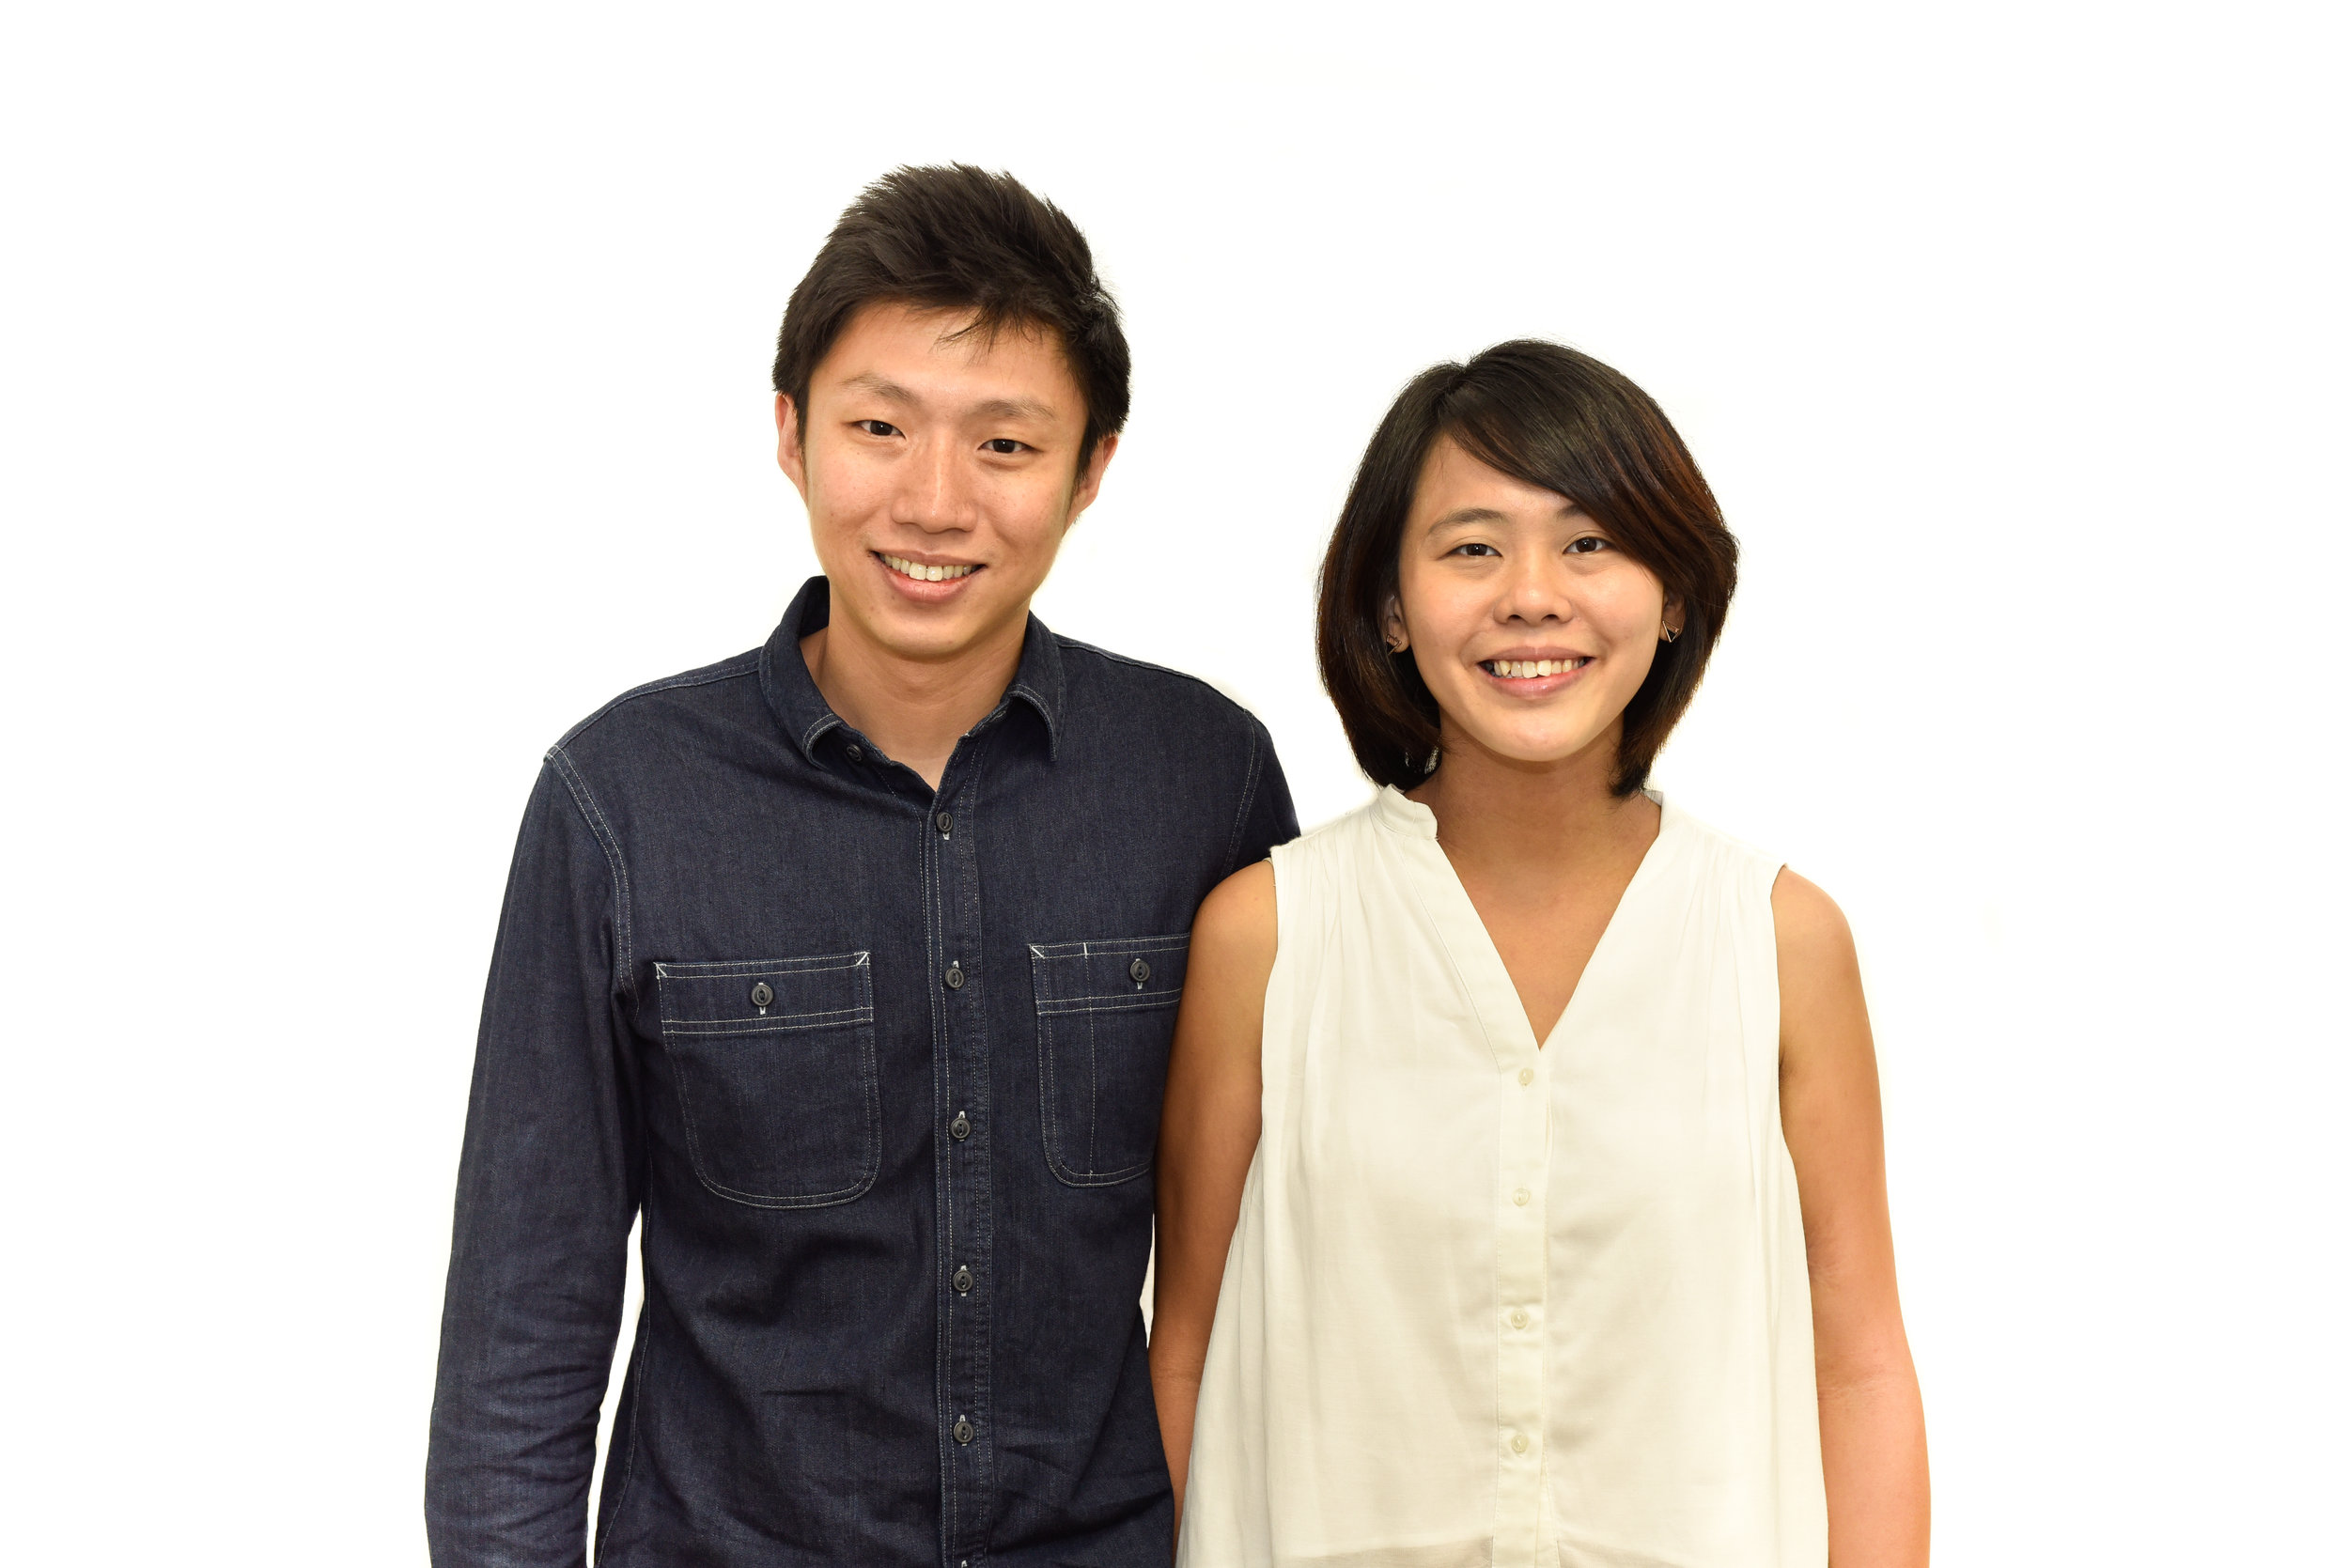 Jacob Ng, married to Yvonne